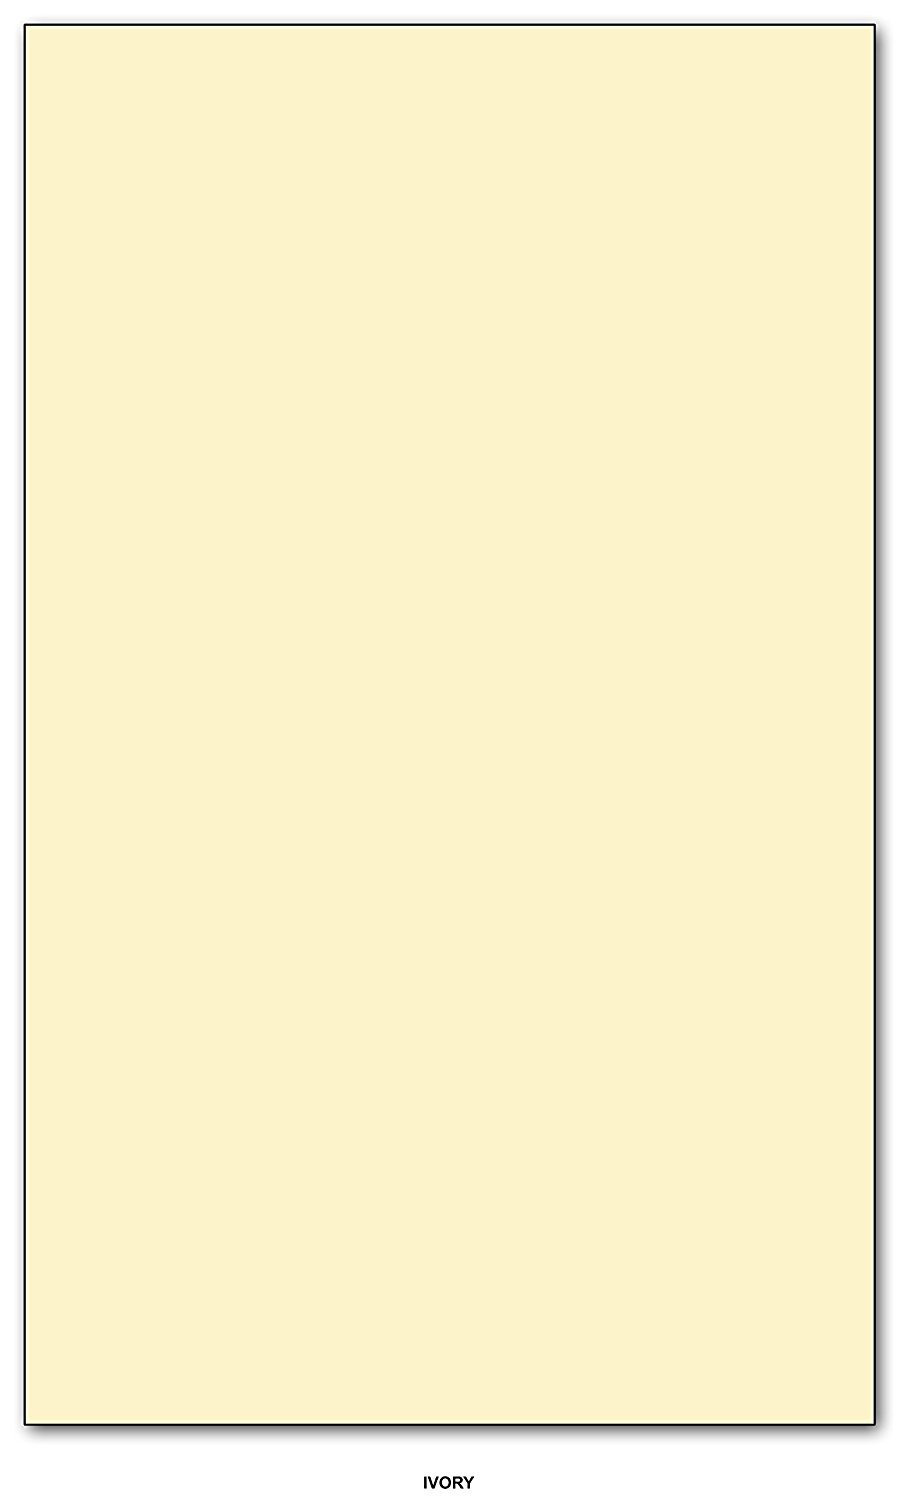 Card / Cover Stock 67lb. Size 8.5 X 14 Legal / Menu Size - 250 Per Pack (Ivory)